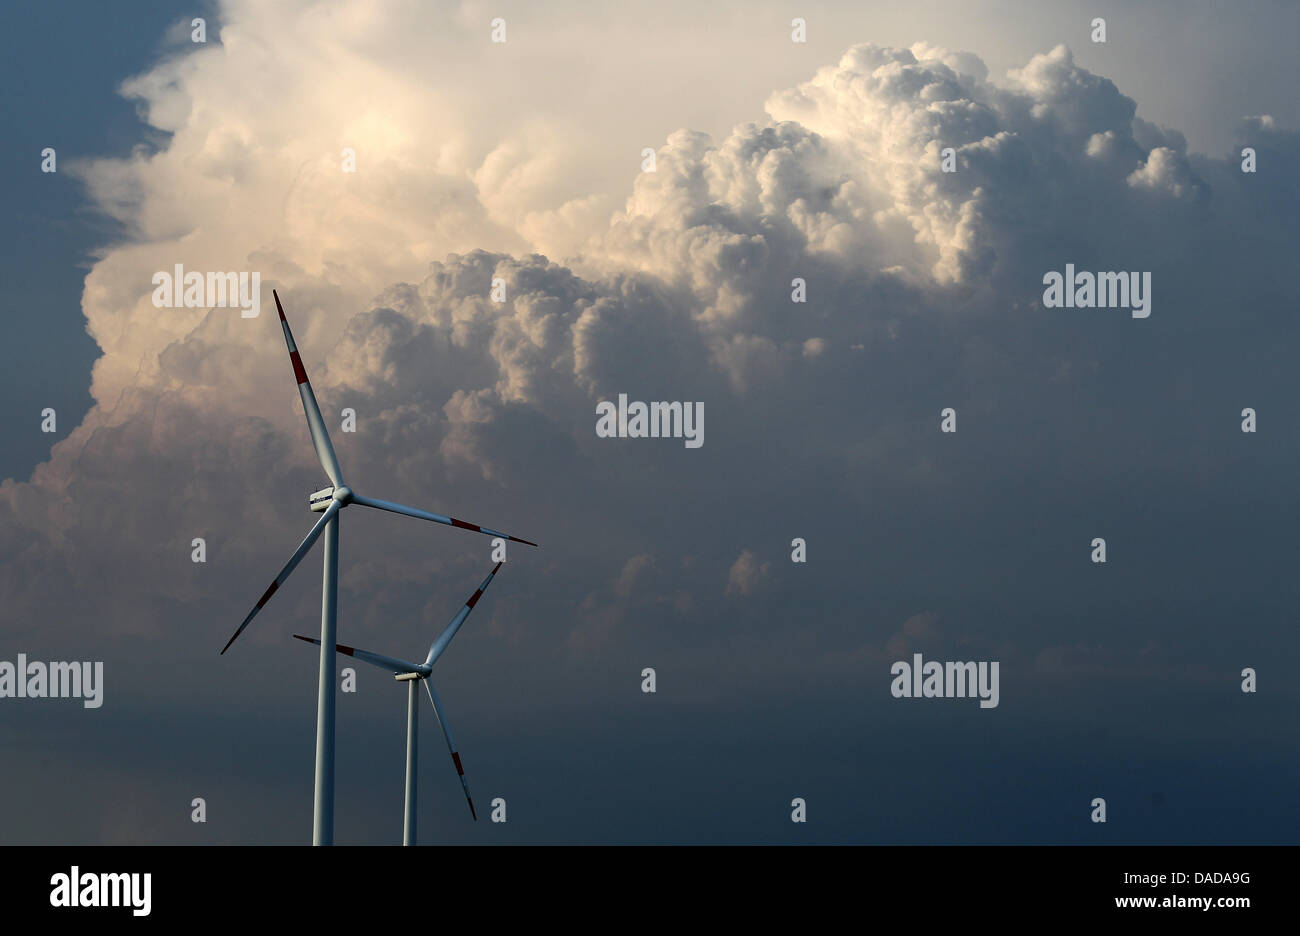 (FILE)An archive photo dated 24 August 2011 shows a storm front behind wind turbines near Loebejuen,Germany, - Stock Image